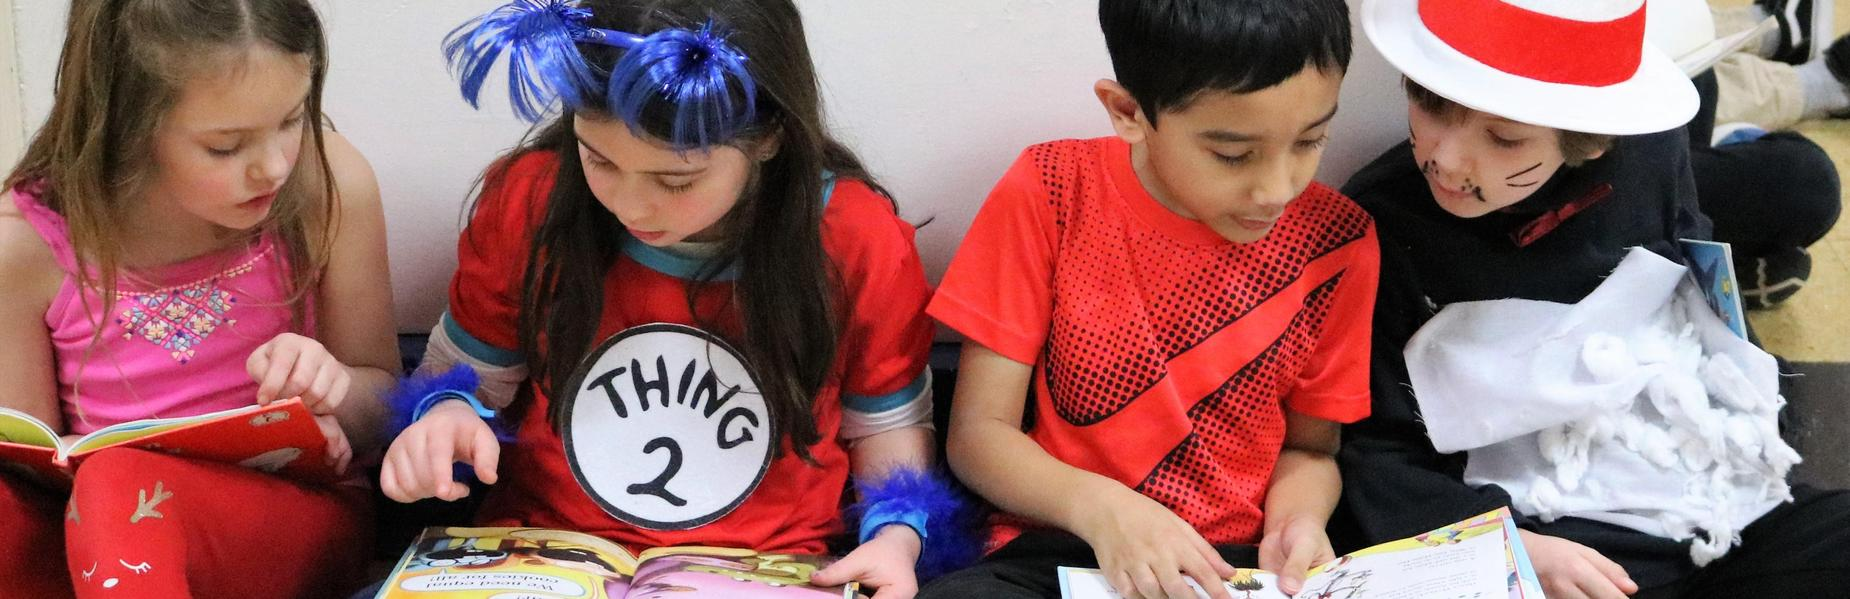 Photo of four 2nd graders, two wearing Dr. Seuss-inspired gear as all four read their favorite Seuss books together for Read Across America Day.